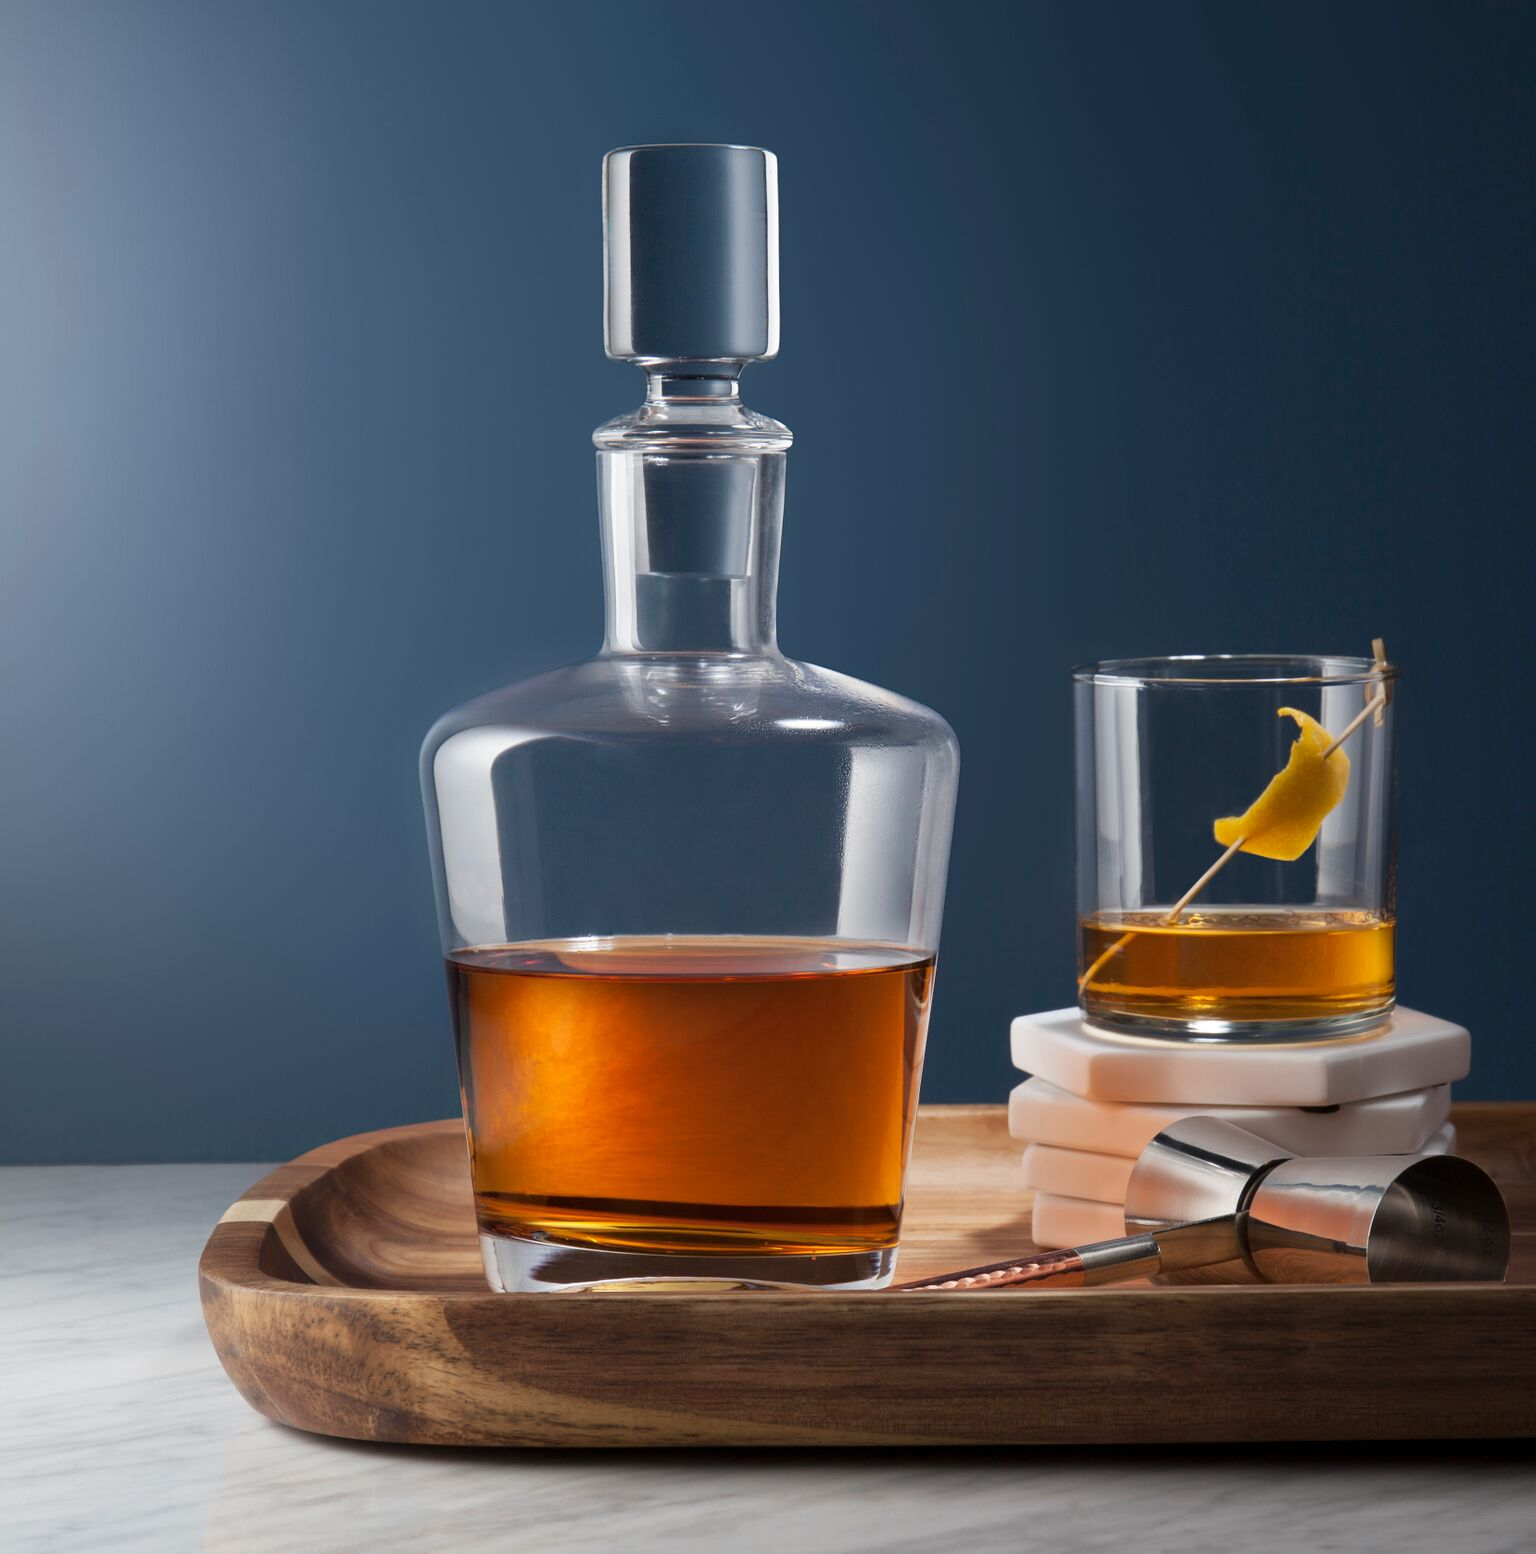 C-00835-01-010_HPBG_Whiskey_MarWk1_2Pack_WhiskeyDecanter_Flat copy_preview.jpeg